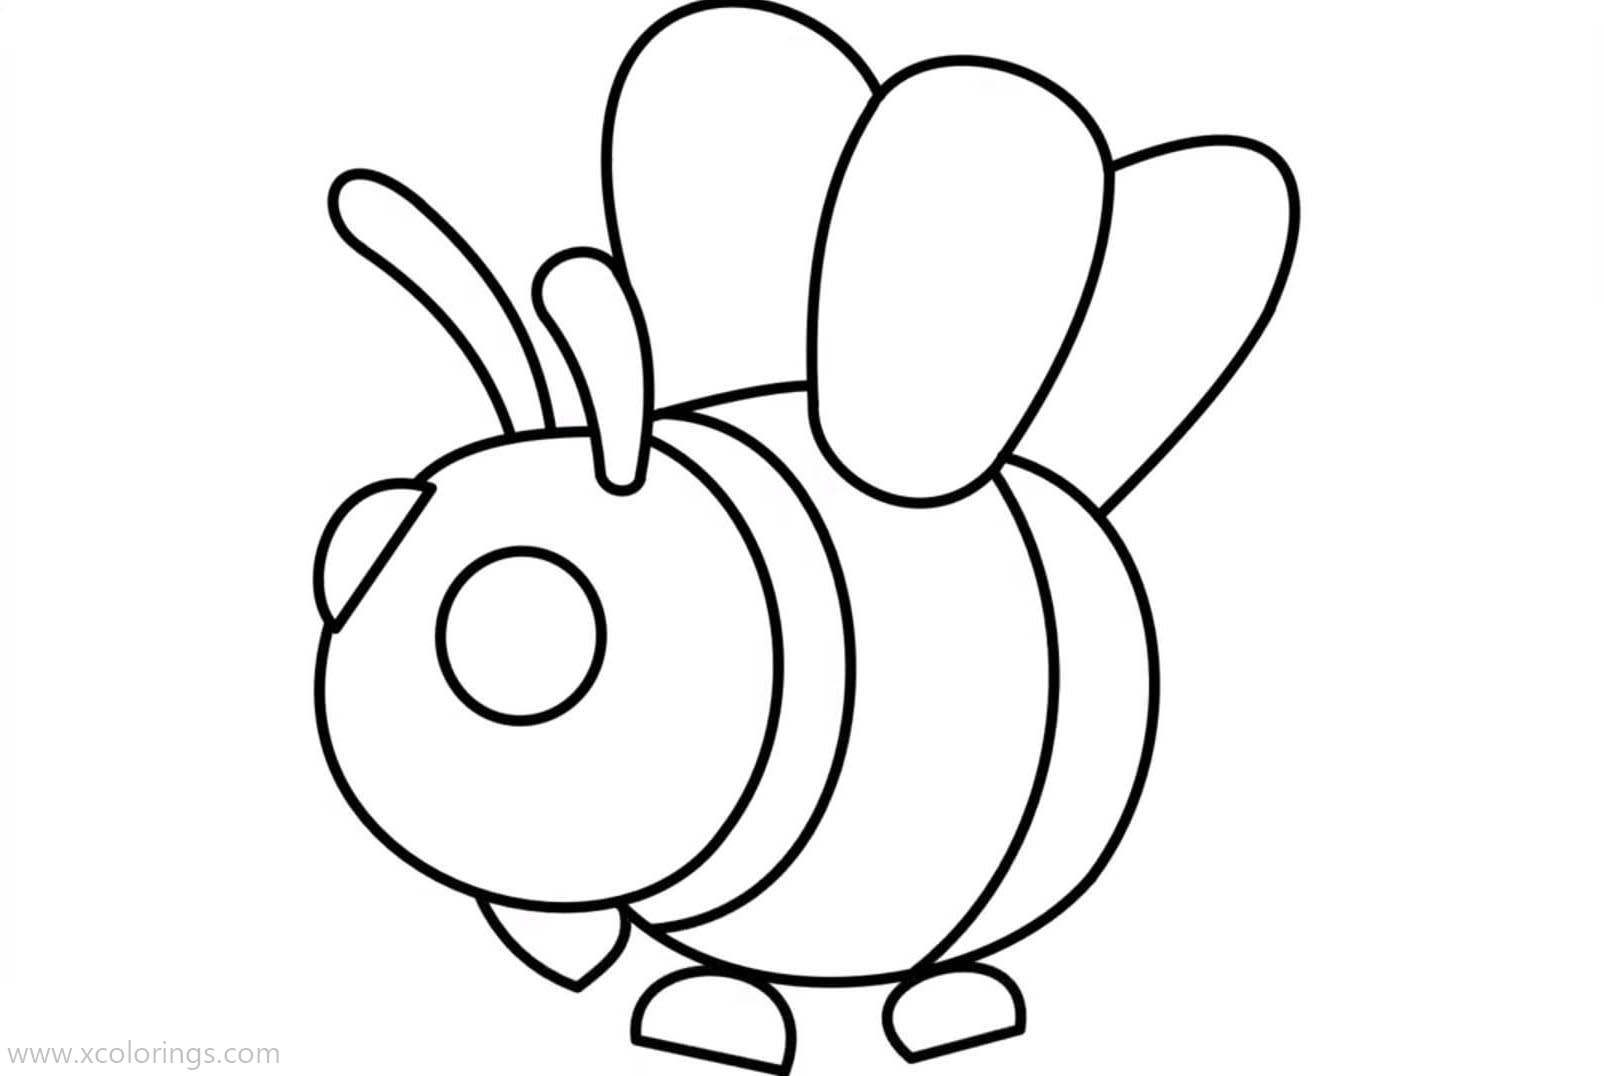 Roblox Adopt Me Coloring Pages Bee Xcolorings Com